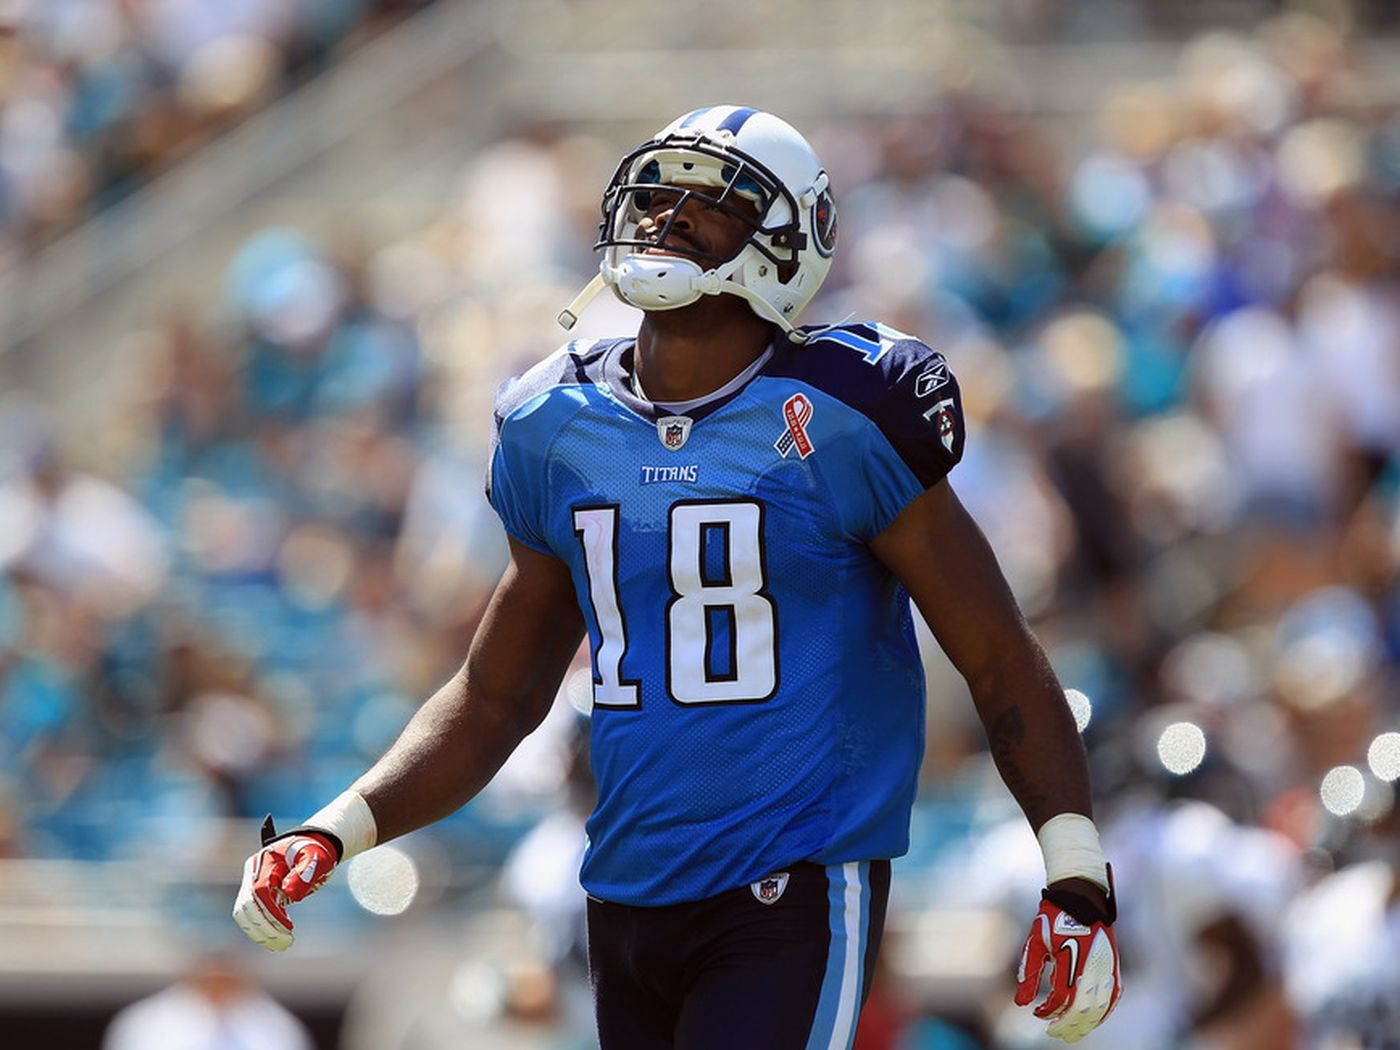 Kenny Britt still refusing to cooperate with New Jersey police ...